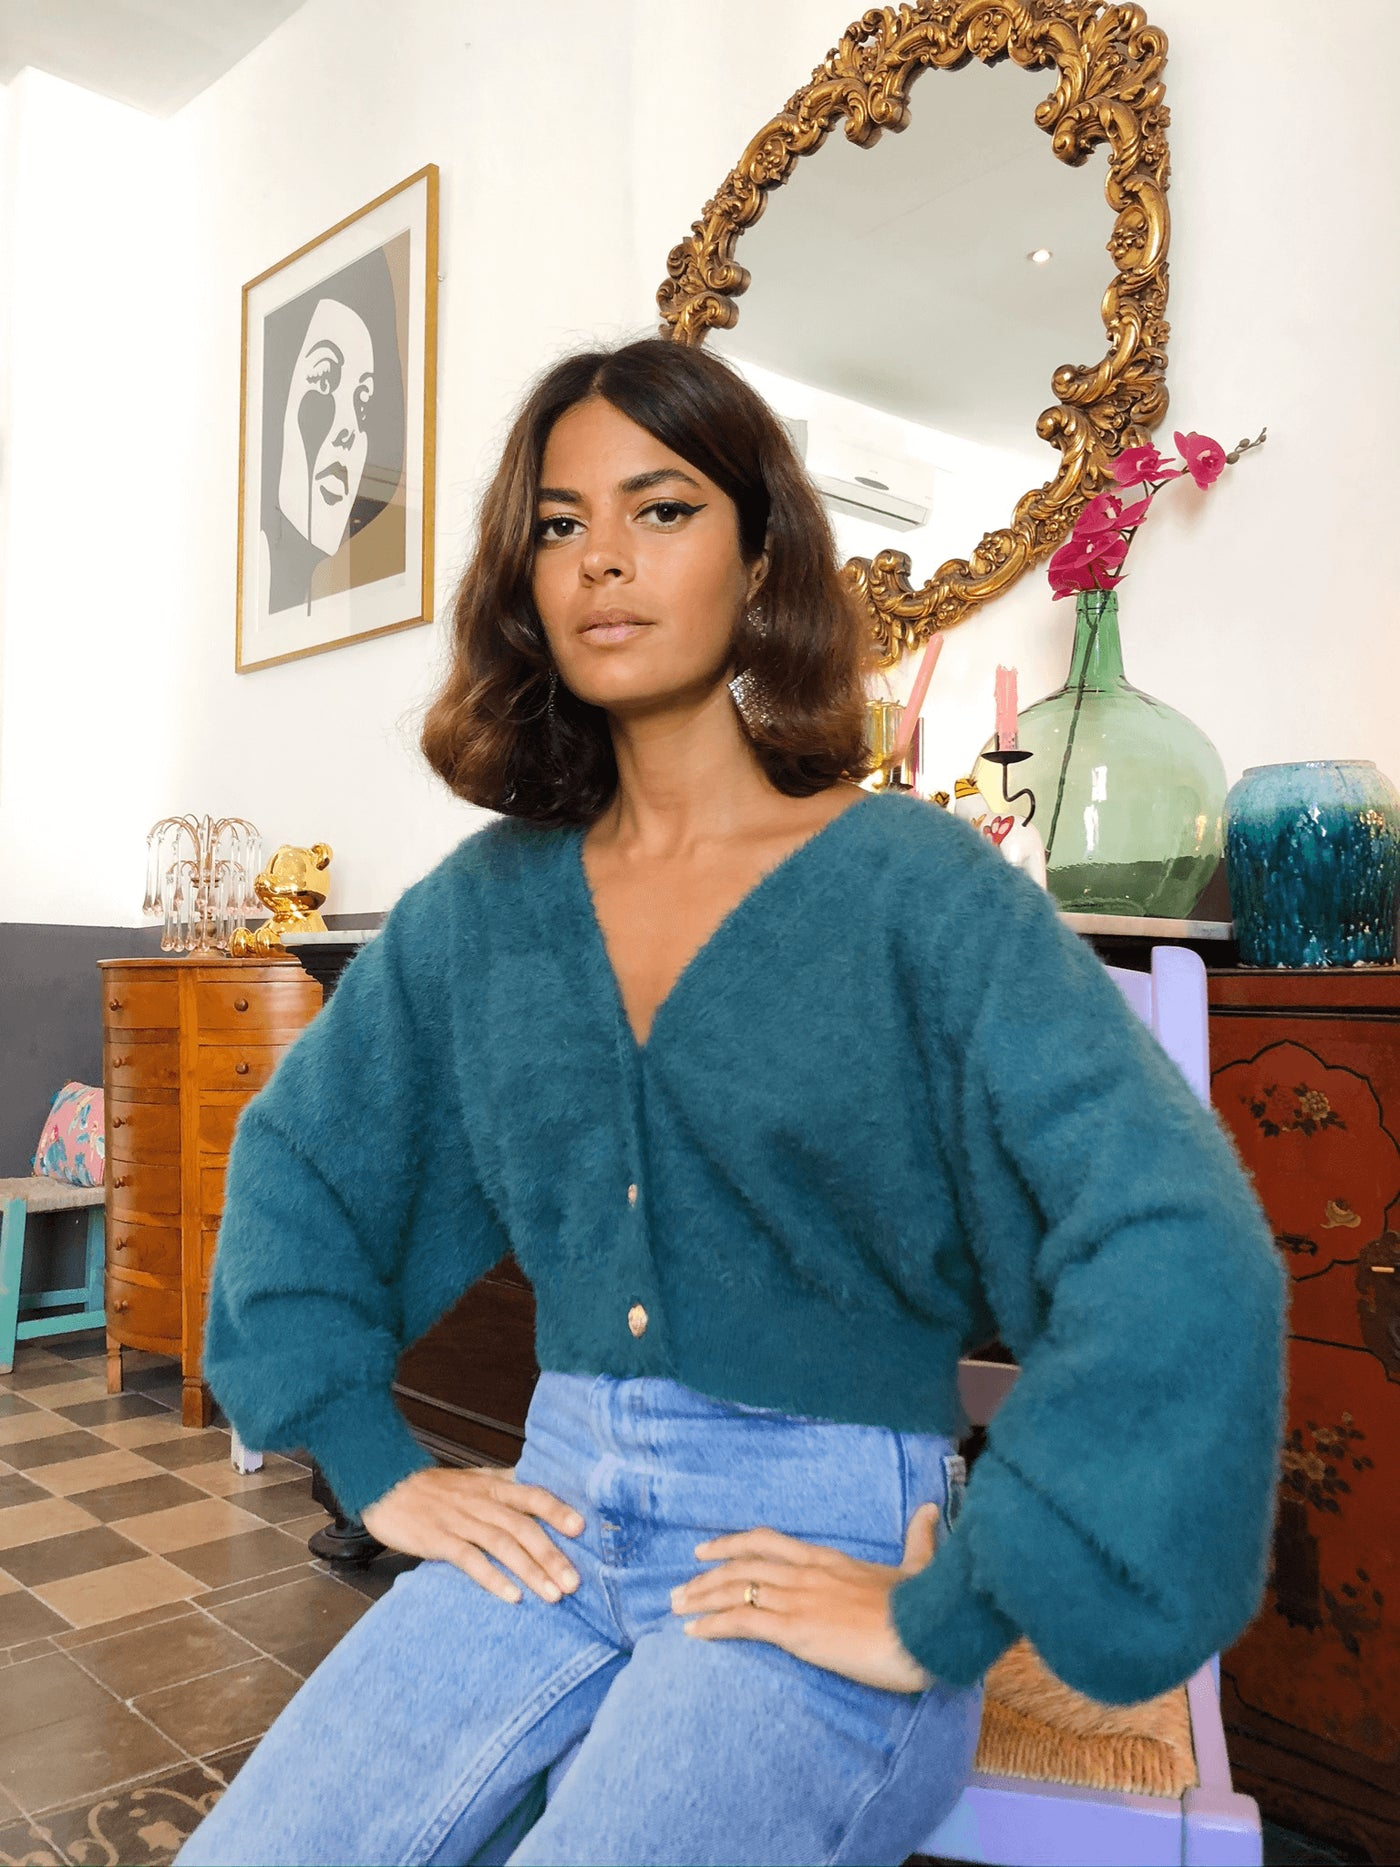 Dancing leopard model wears ariana cropped cardigan in forst green sitting down with jeans